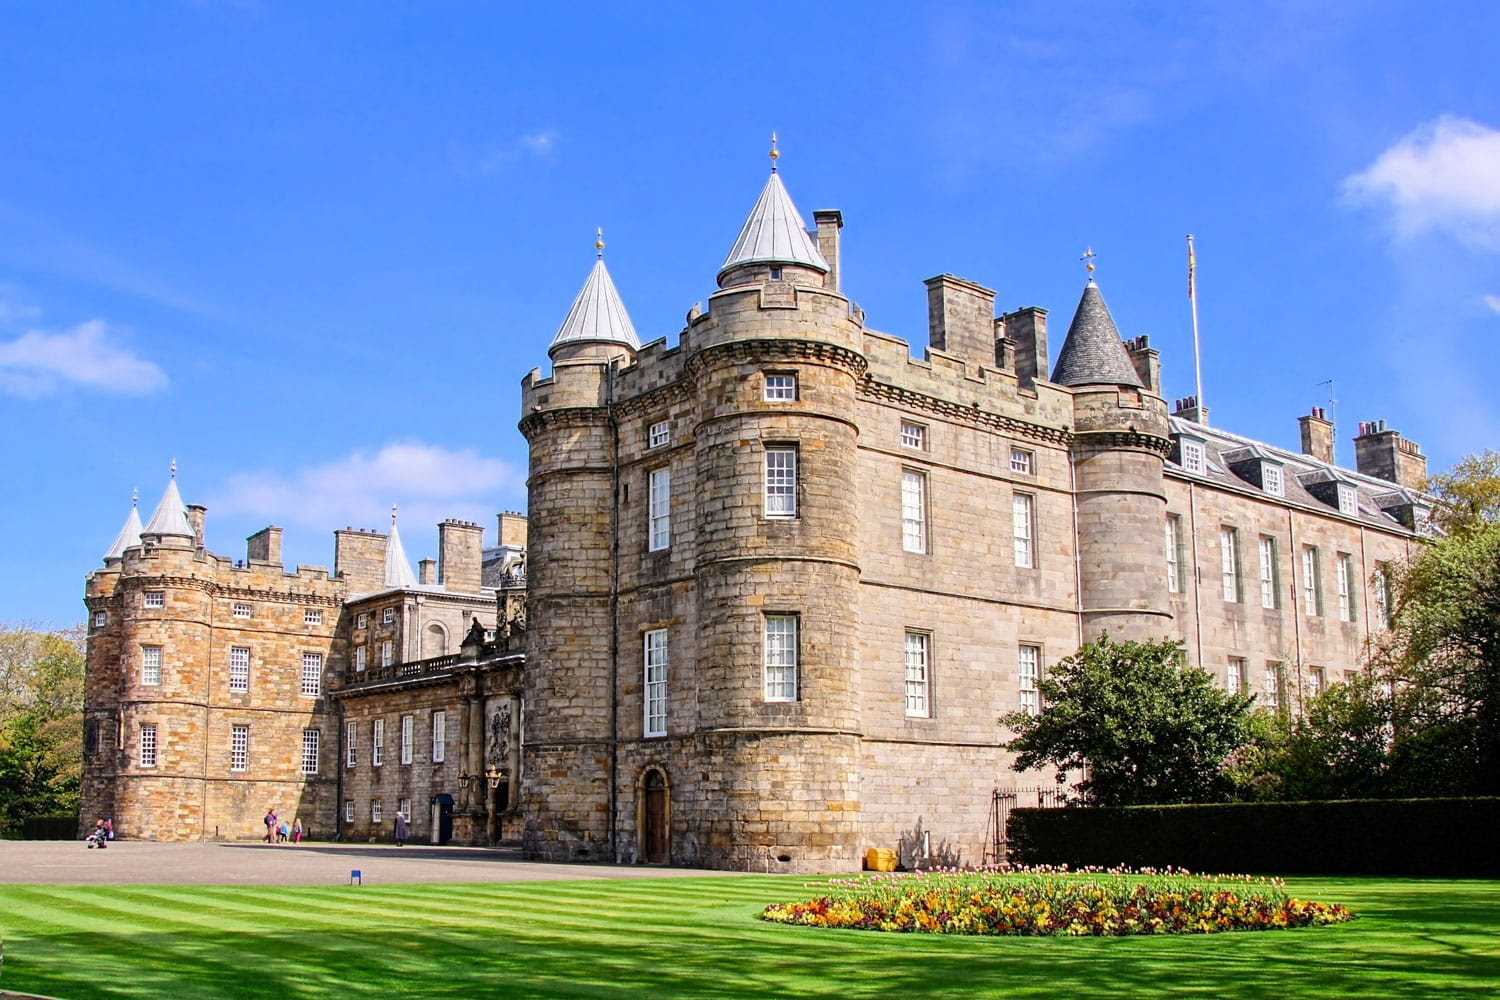 Palace of Holyroodhouse, official residence of the Queen in Scotland